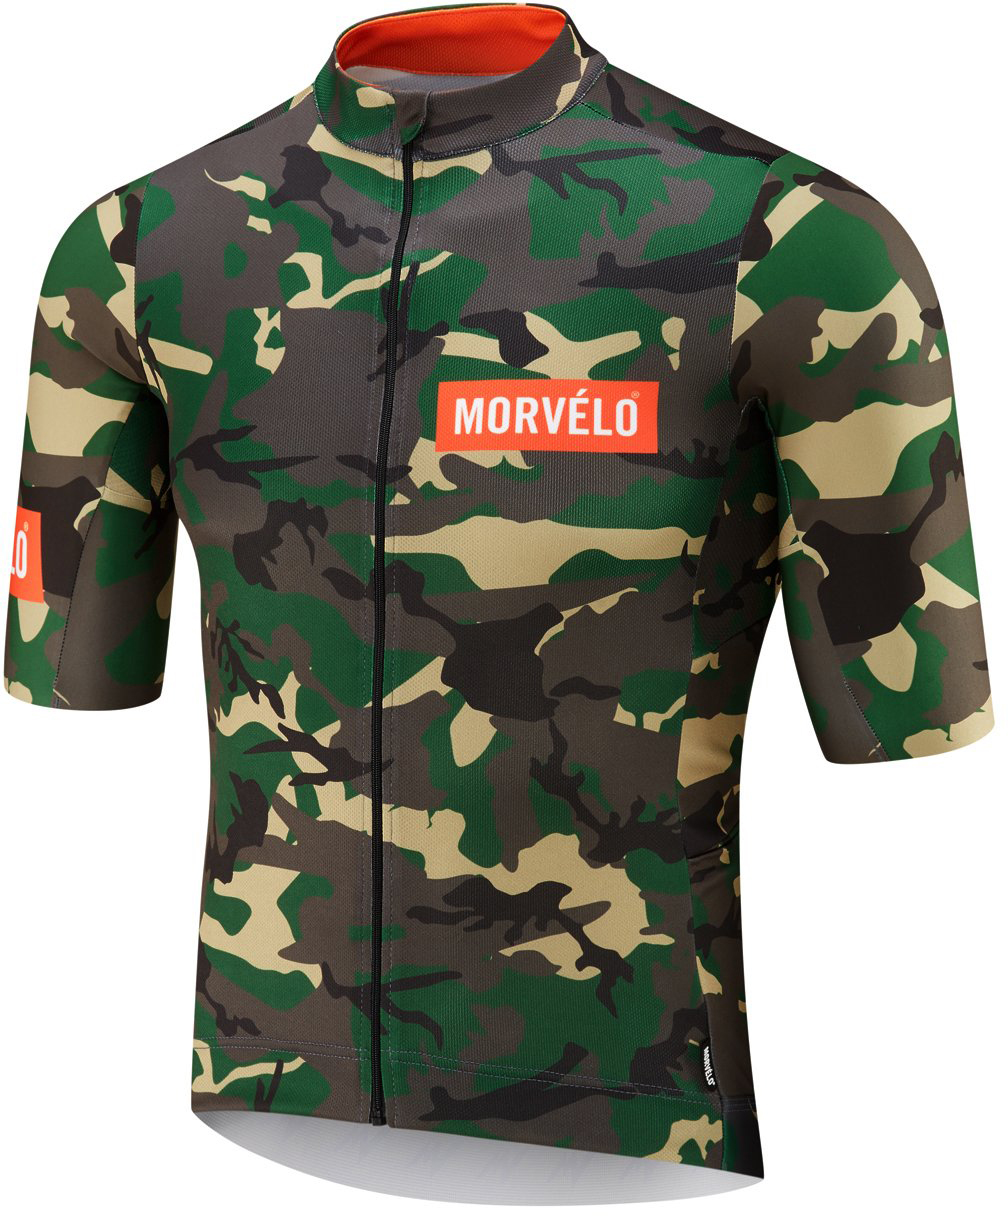 Morvelo NTH Series Camo Short Sleeve Jersey Green/Brown L | Trøjer